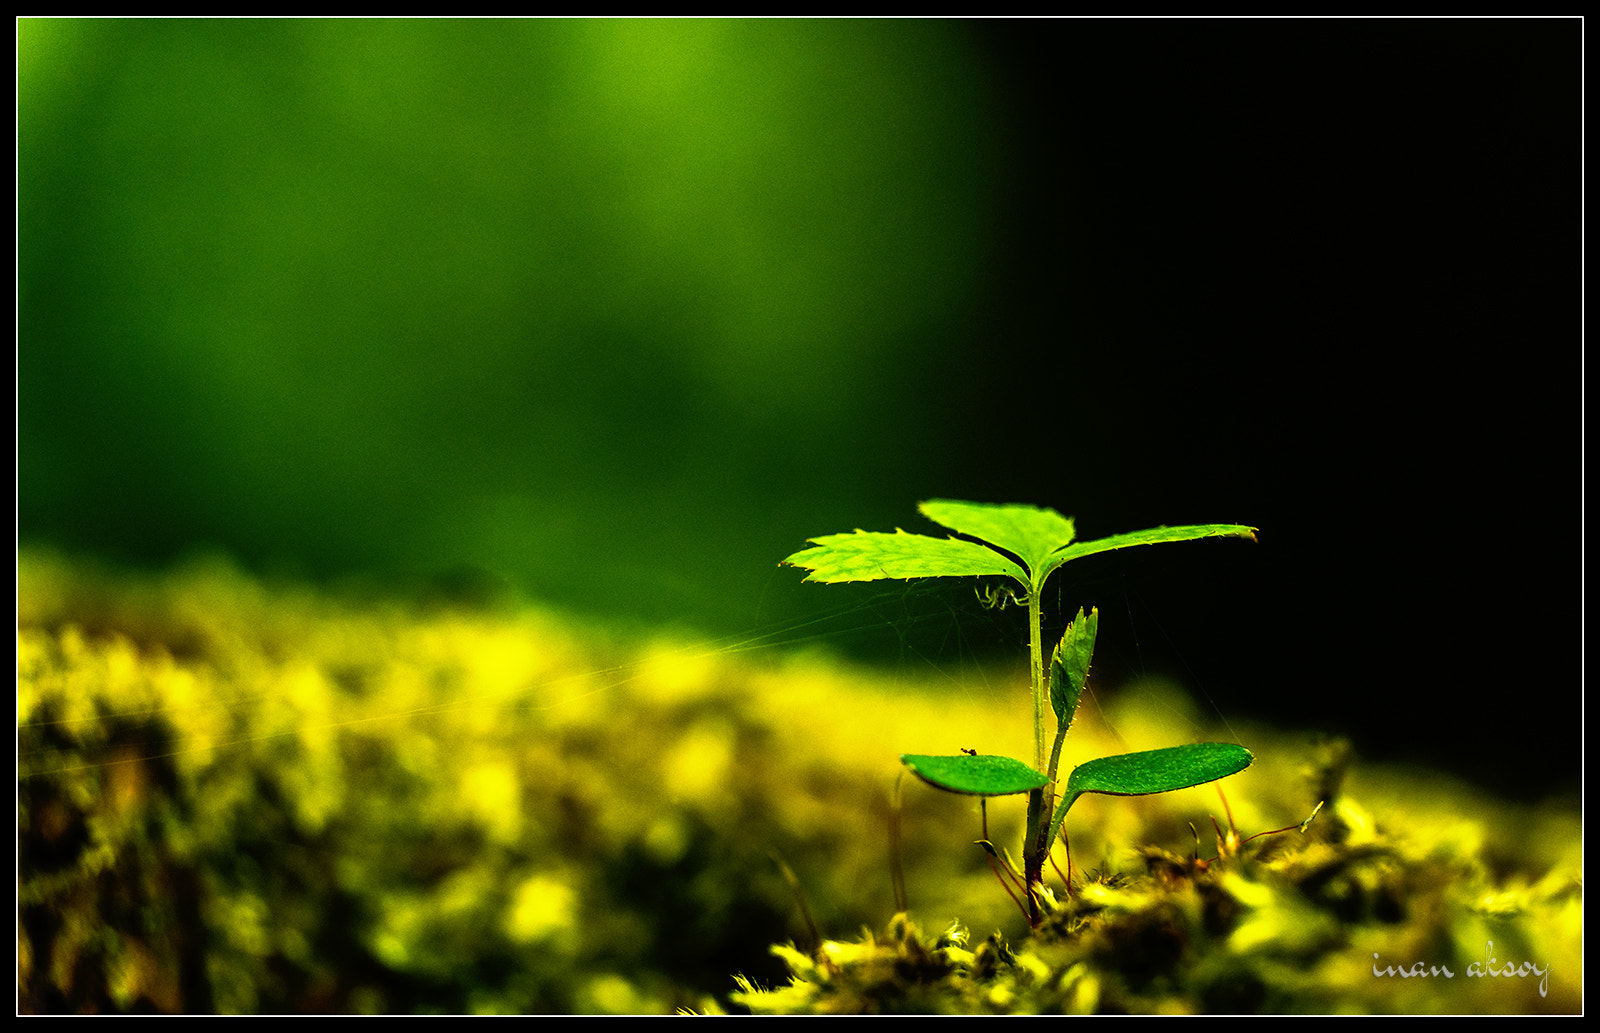 Photograph A new life begins by Inan Aksoy on 500px